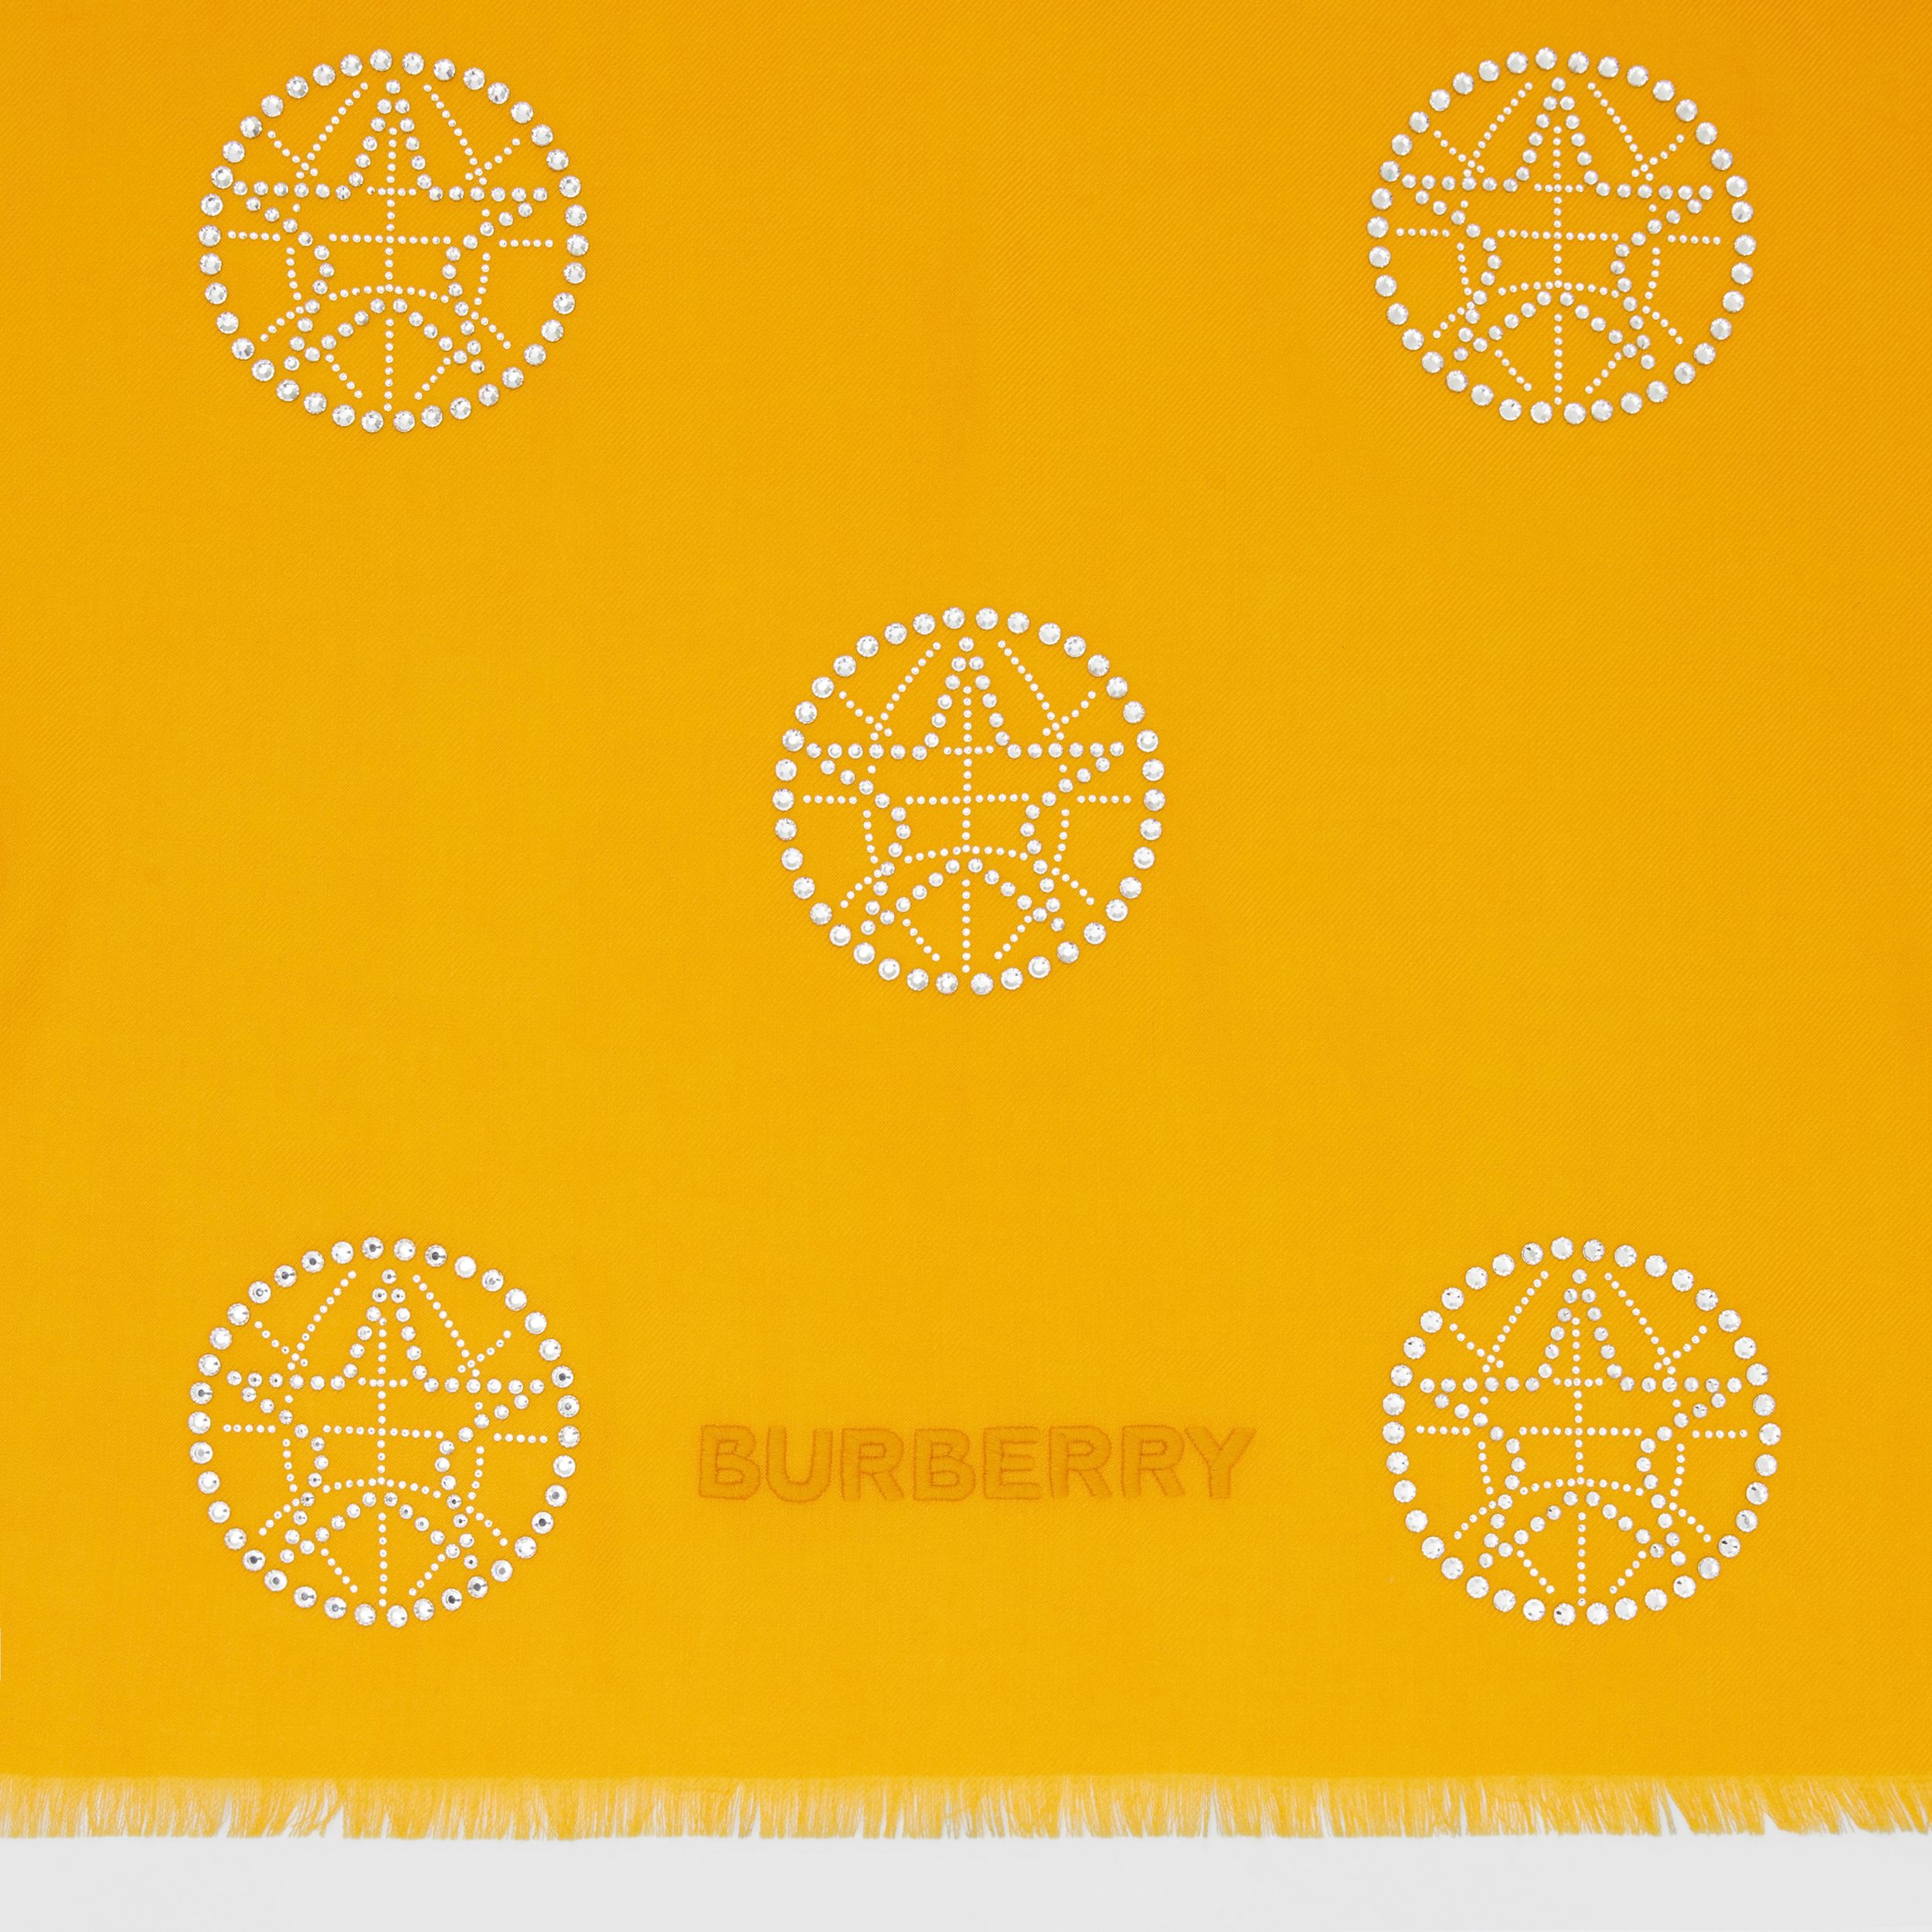 Crystal Globe Graphic Lightweight Cashmere Scarf in Citrus Orange | Burberry - 2